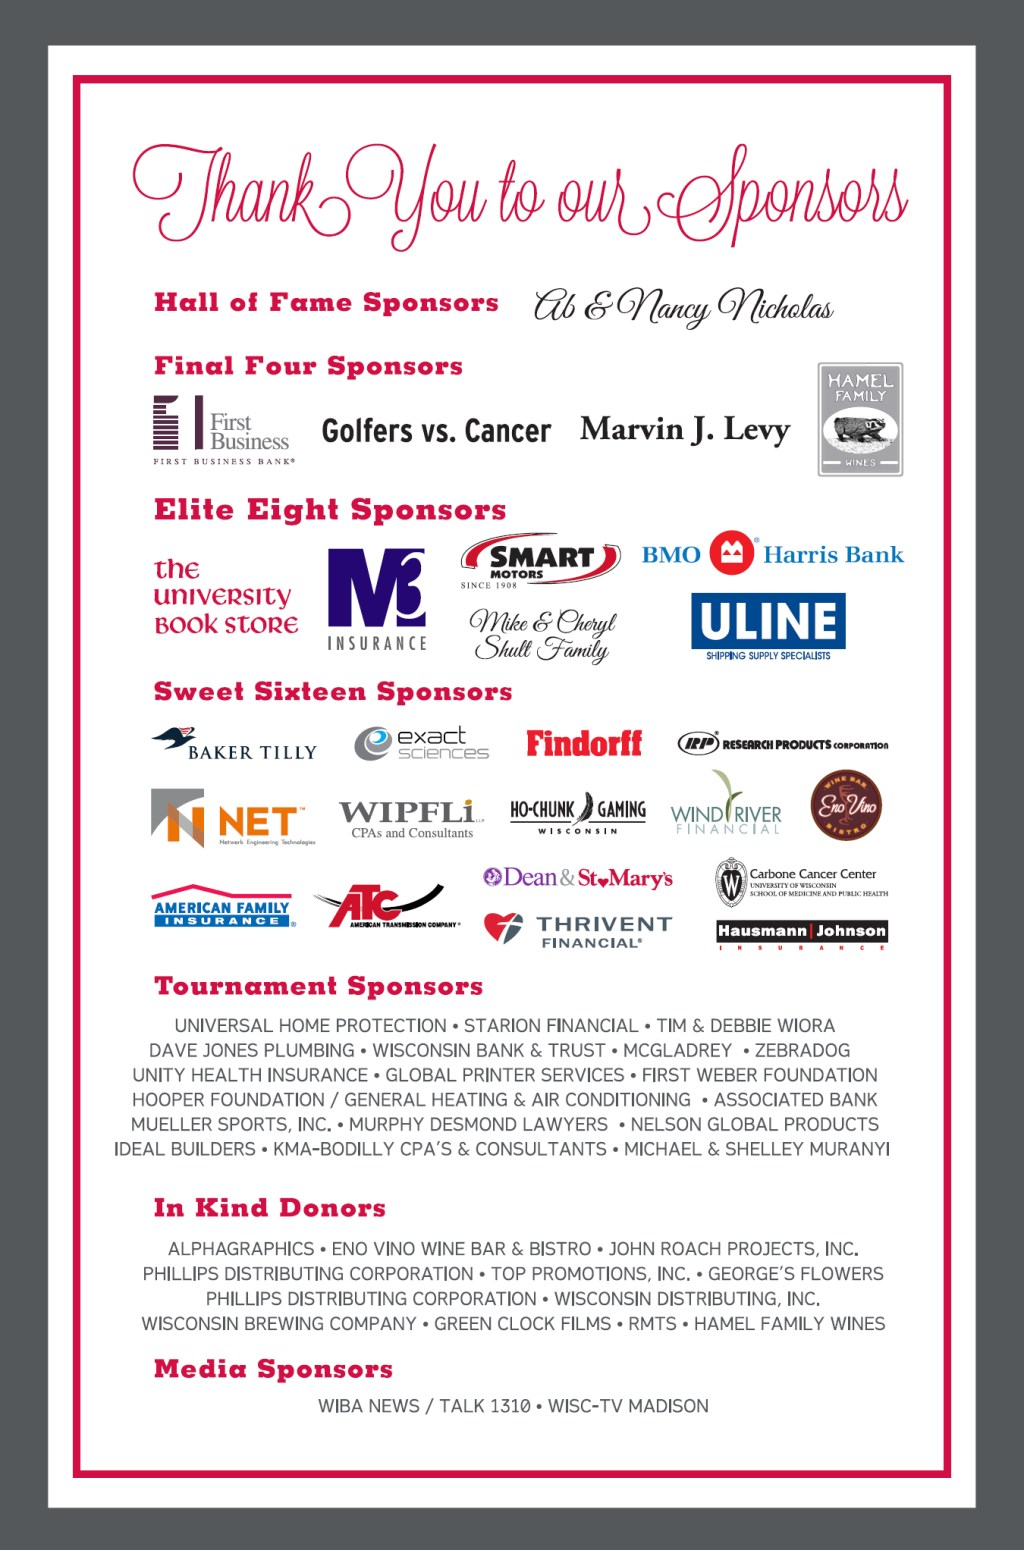 Thanks to our 2014 Sponsors!